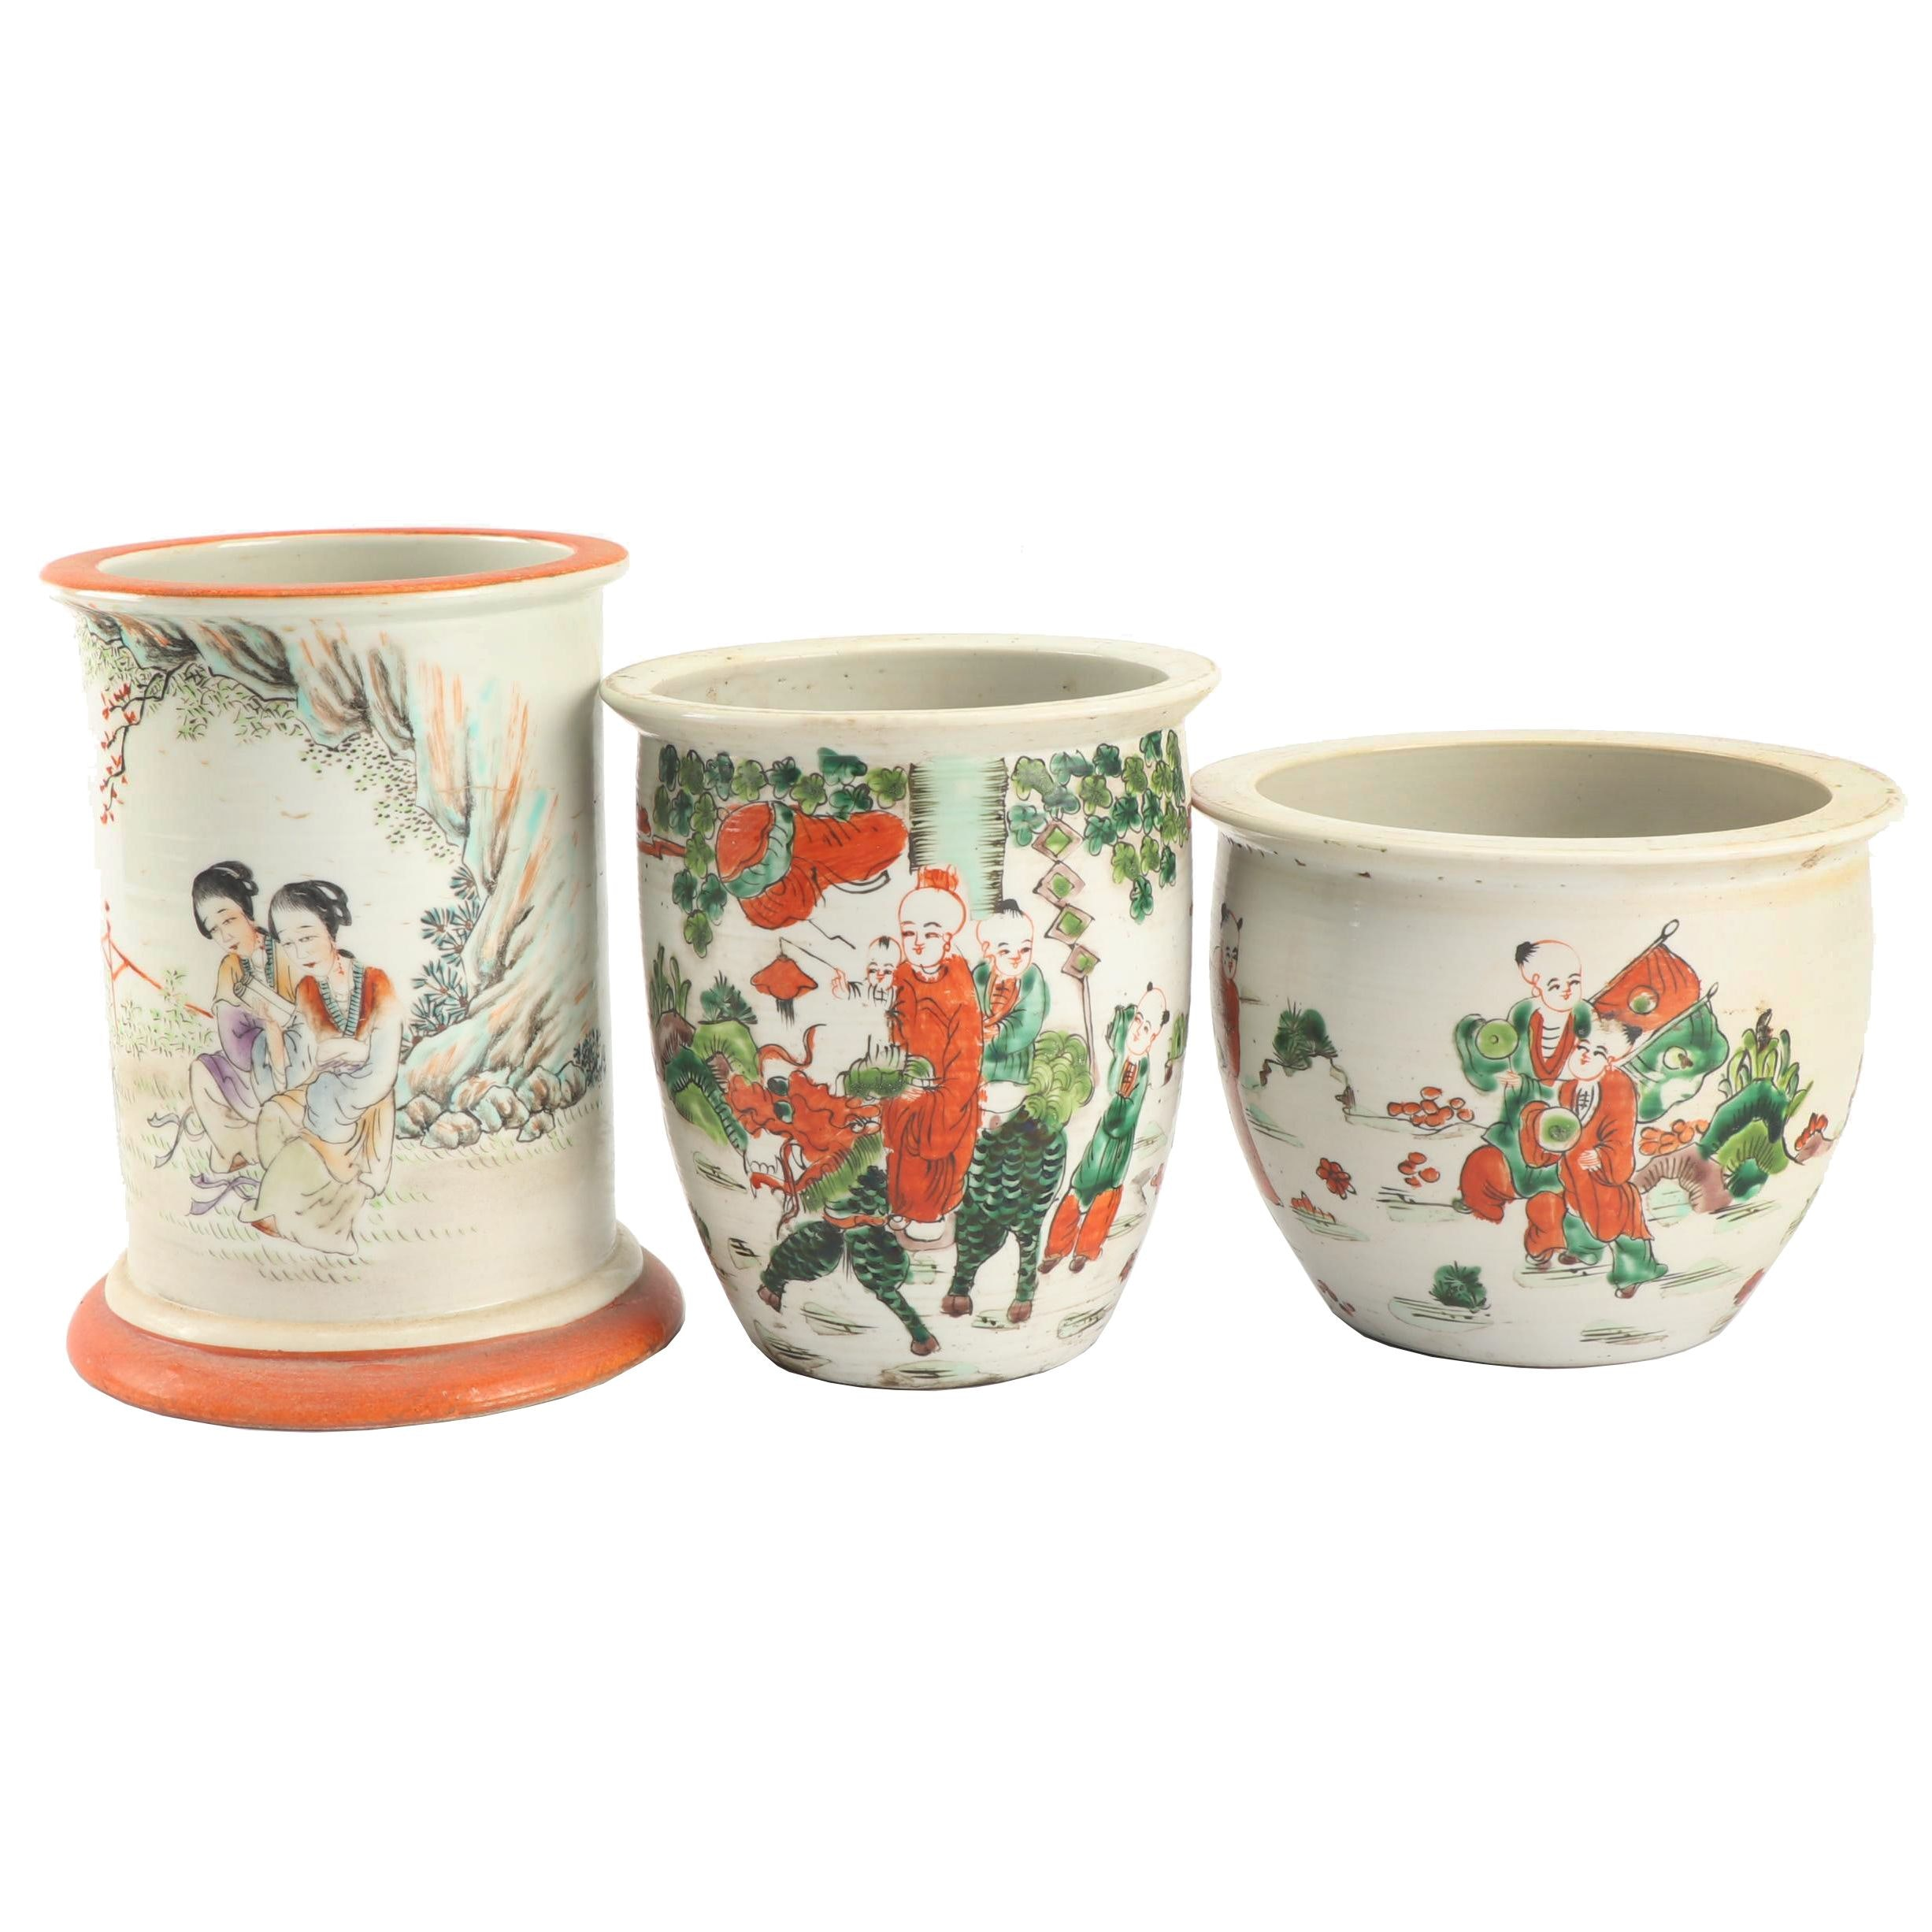 Chinese Hand-Painted Planters and Vase